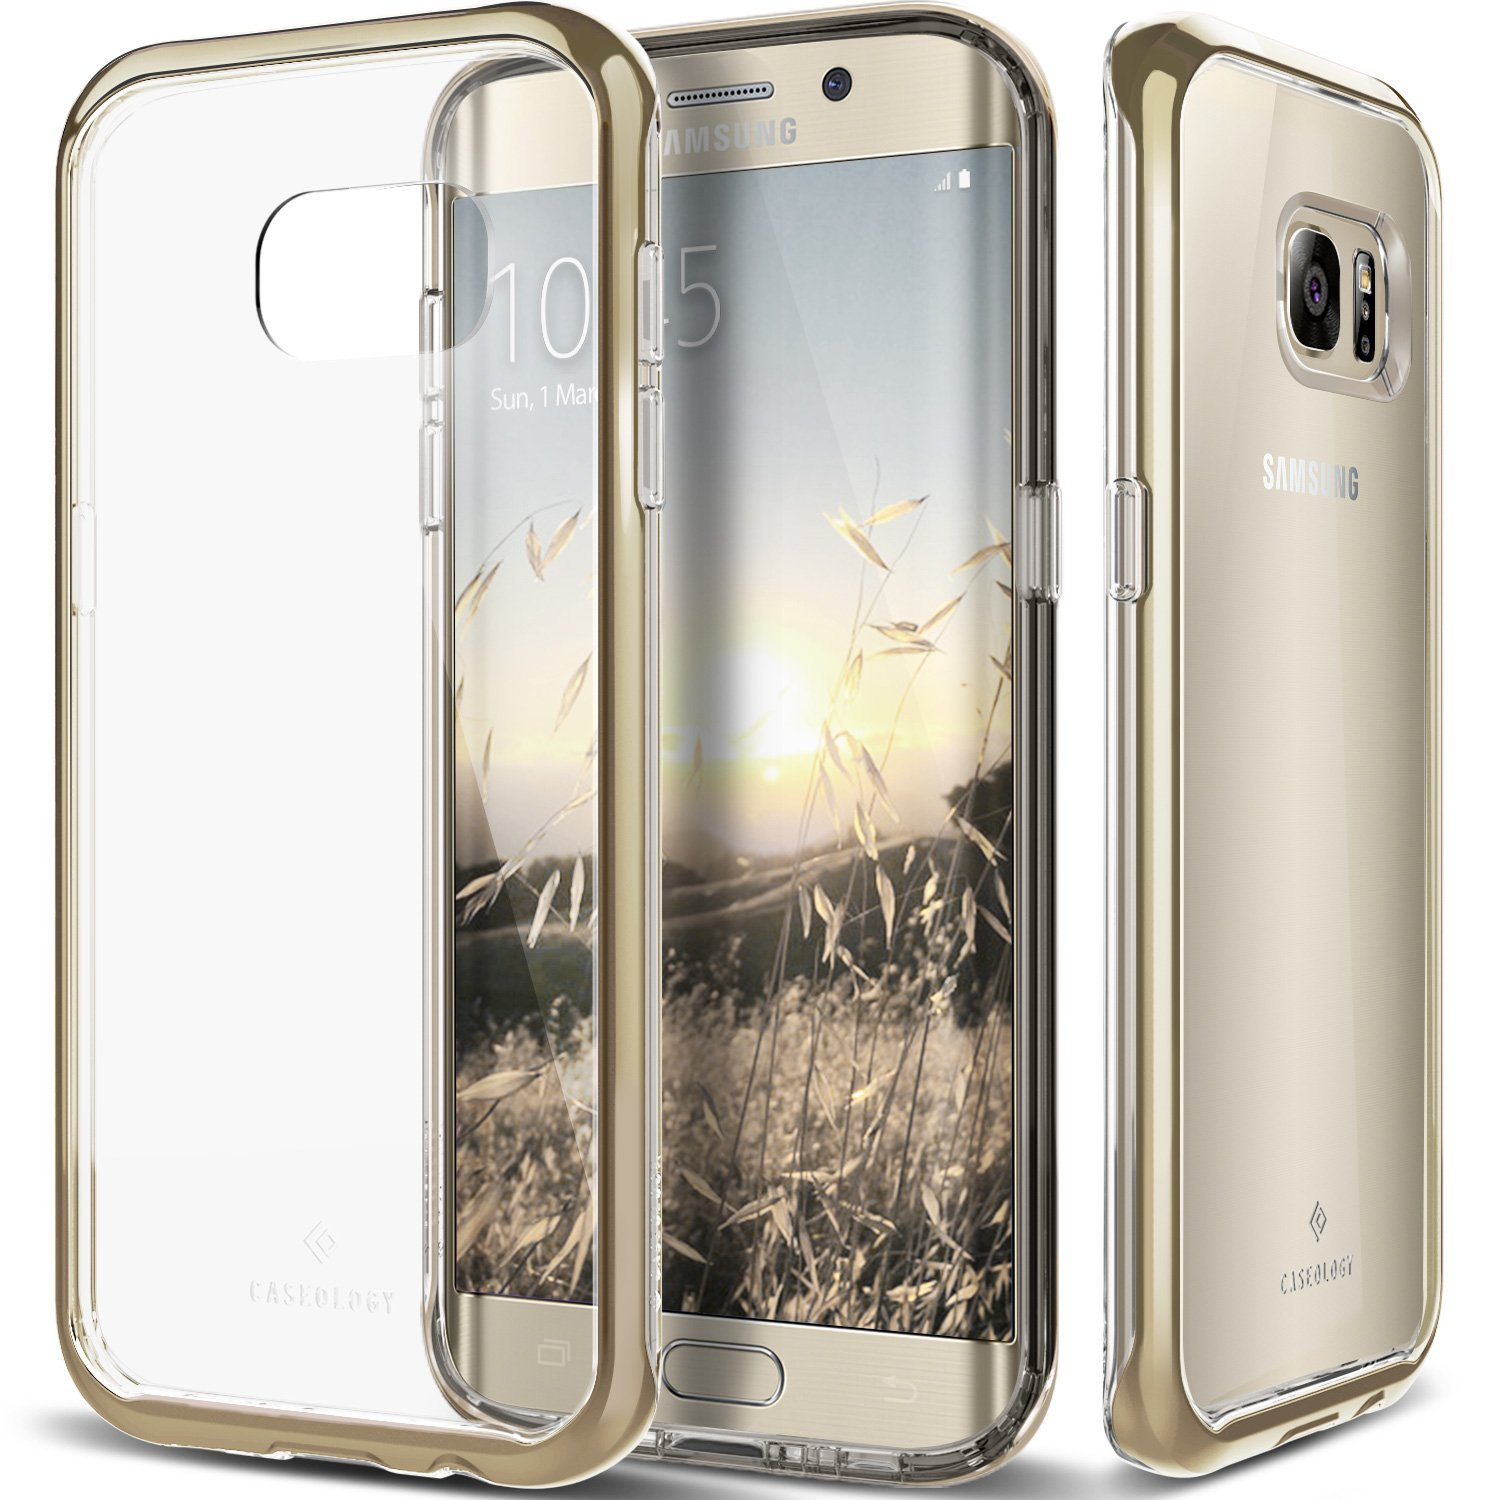 Top 10 Best Samsung S7 edge Cases and Covers in 2019 Review